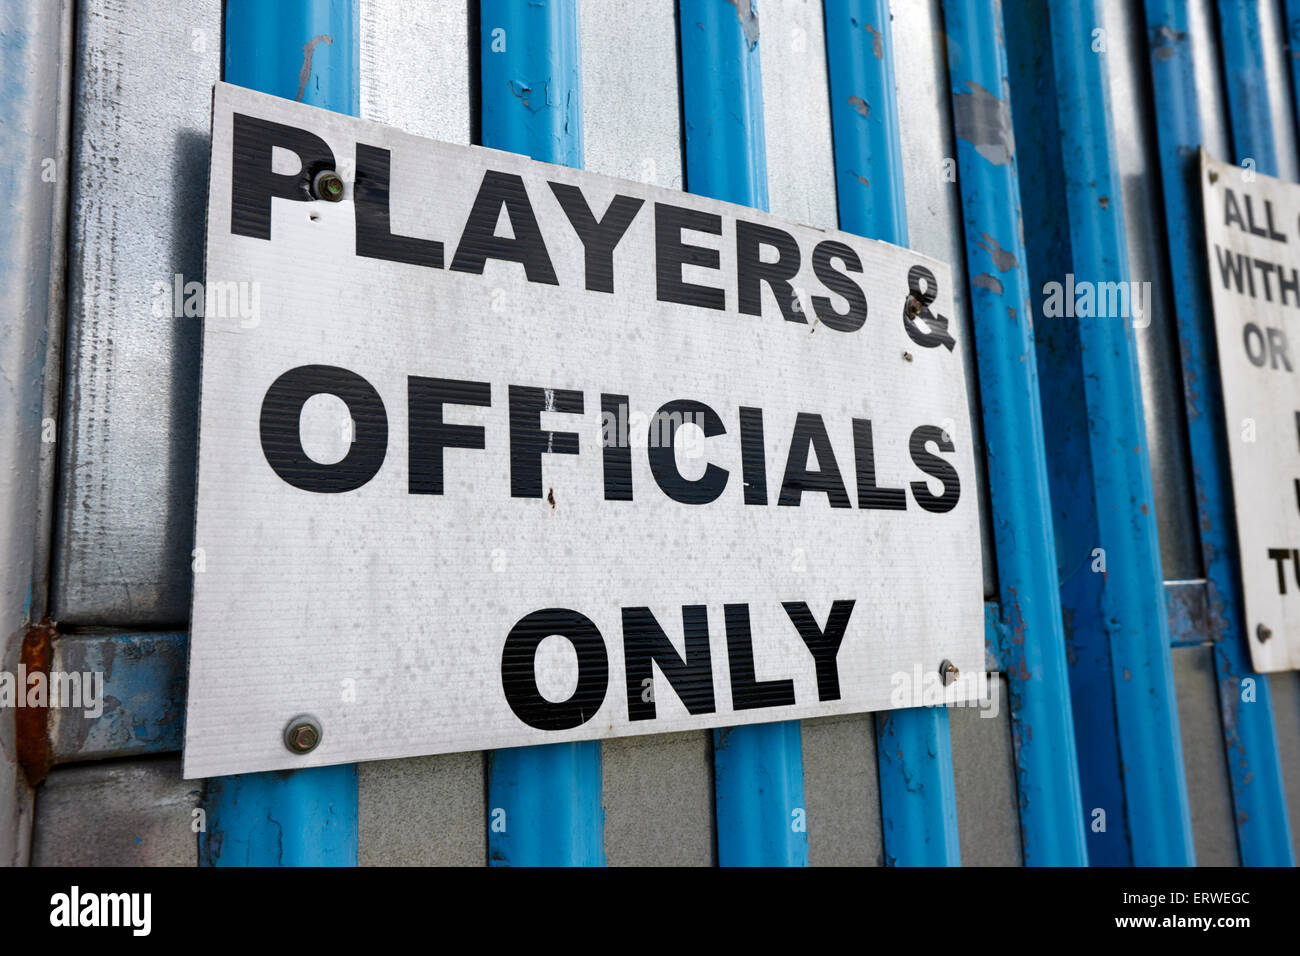 players and officials only entrance to a sports stadium - Stock Image